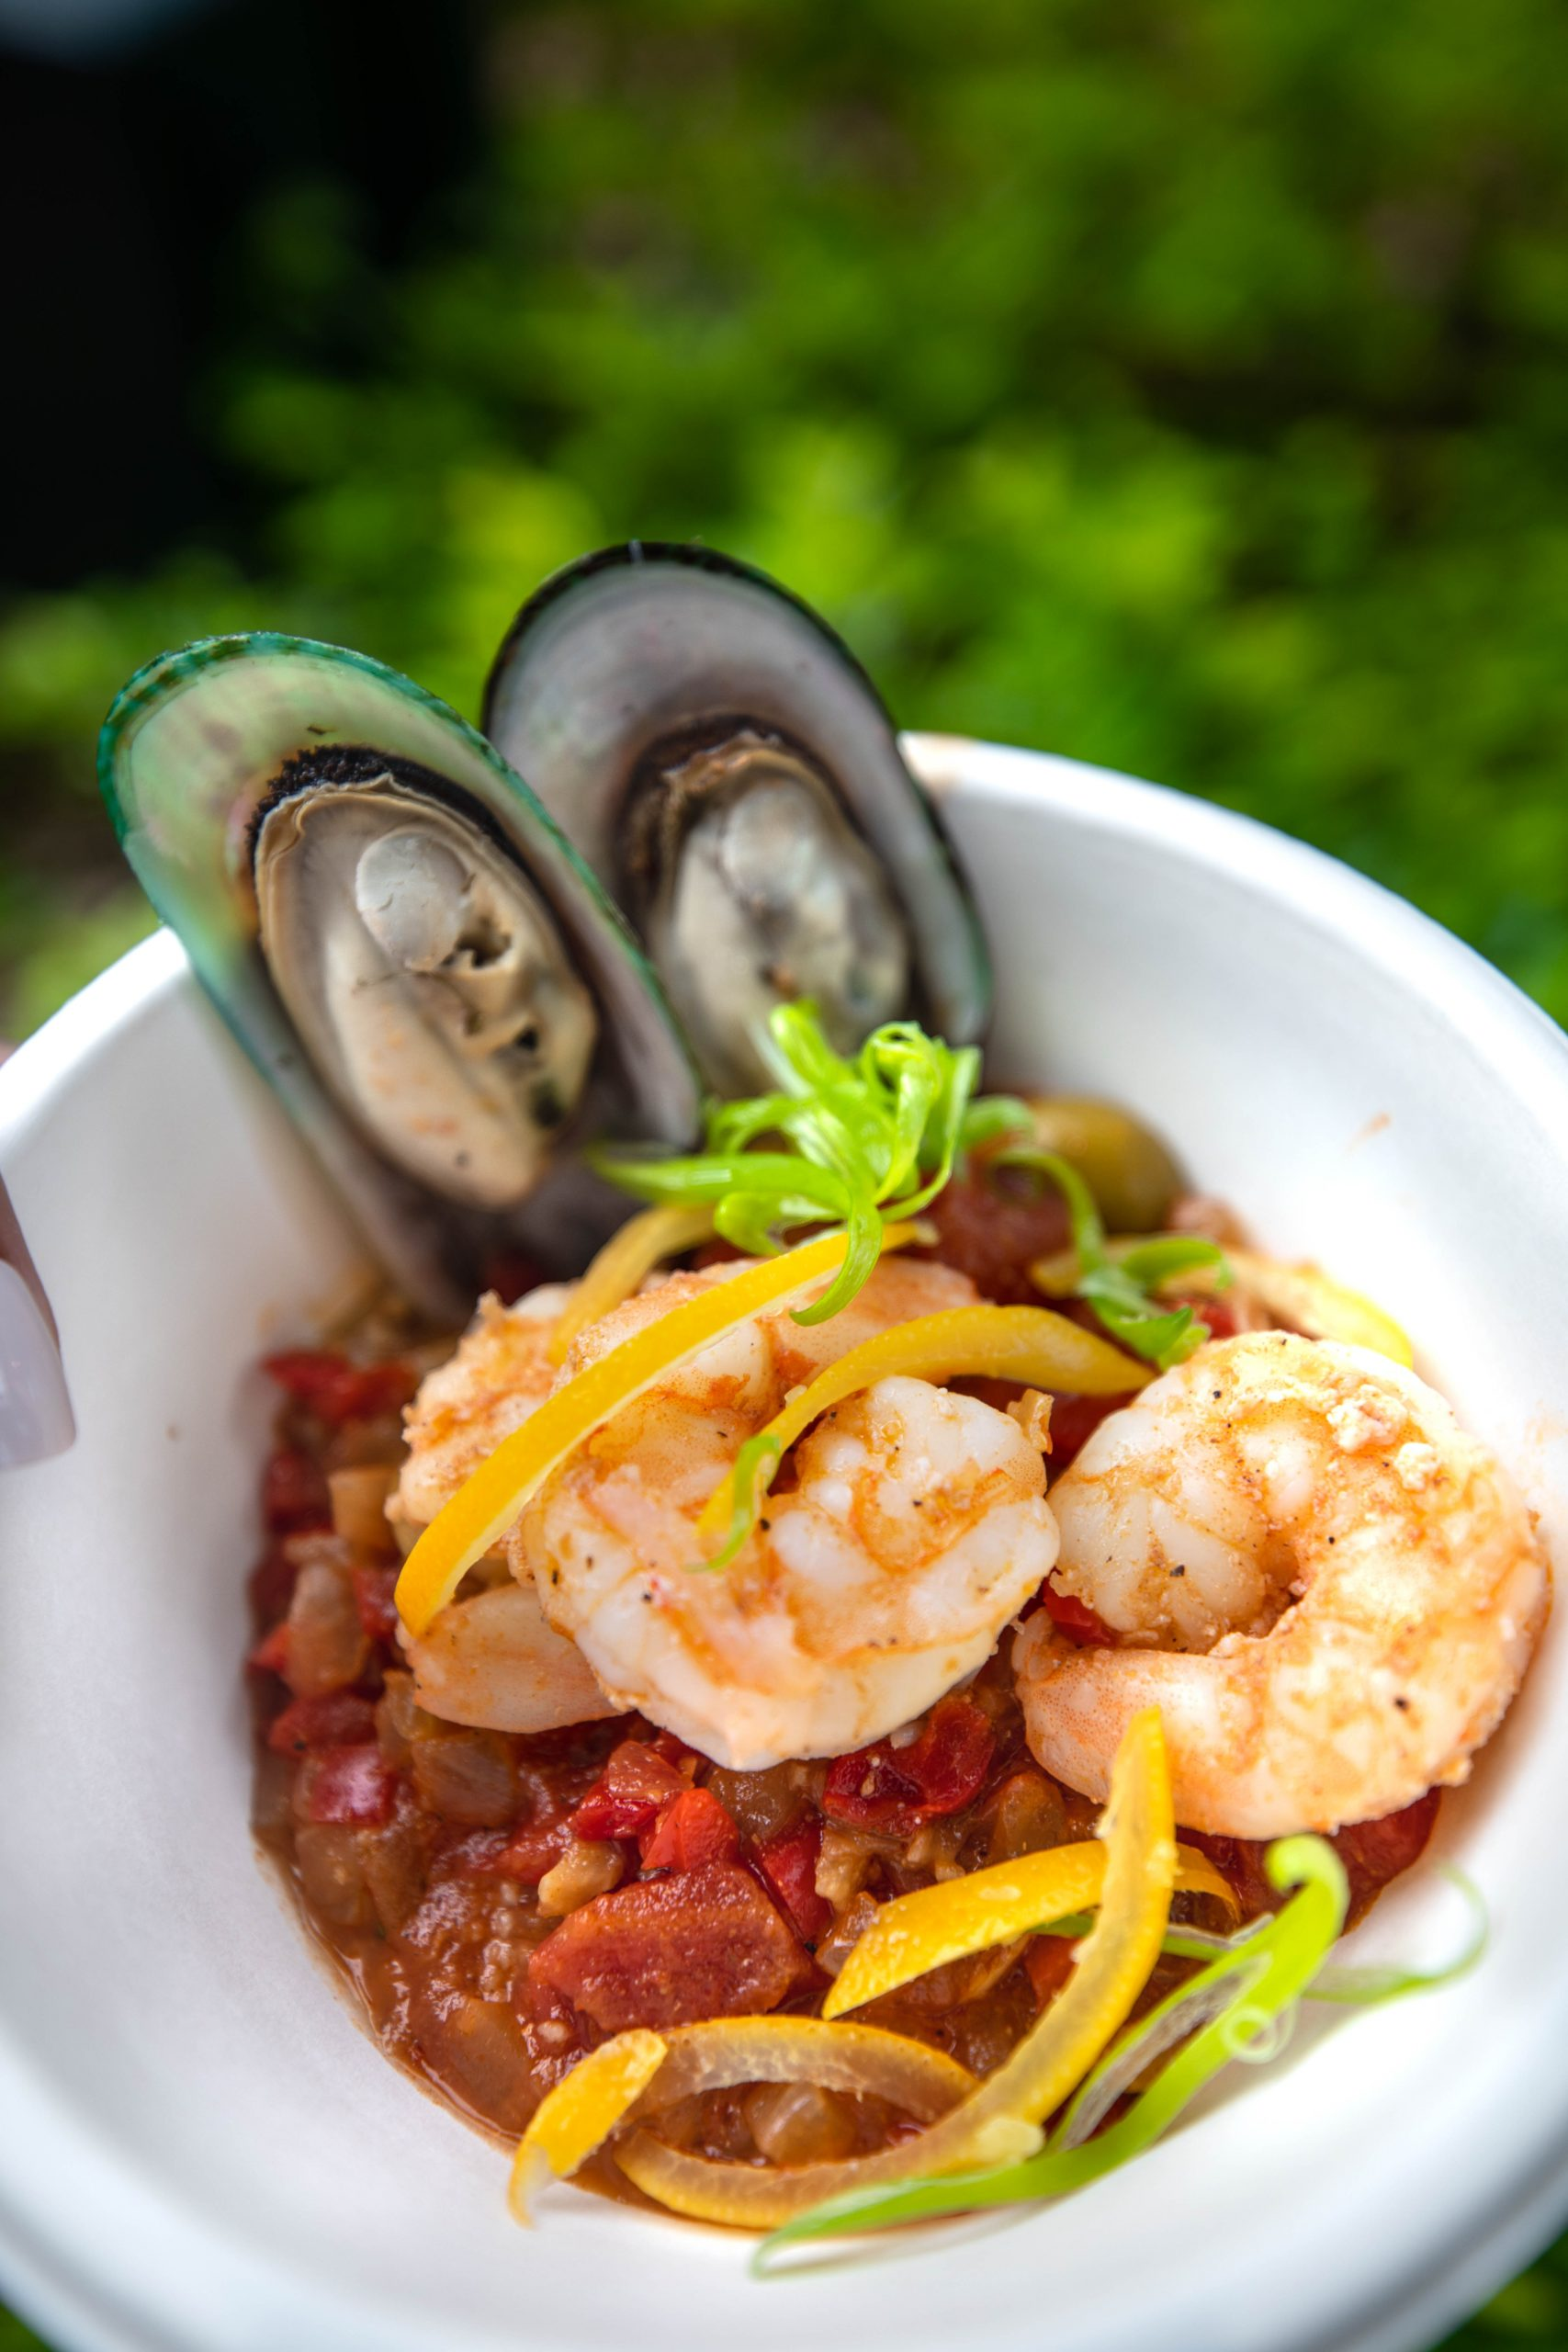 Moroccan Seafood Couscous with Shrimp, Mussels, Olives, Preserved Lemon, and Anchovy Breadcrumbs from La Isla Fresca between Morocco and France at Epcot in Walt Disney World Orlando Florida Photographed by Annie Fairfax